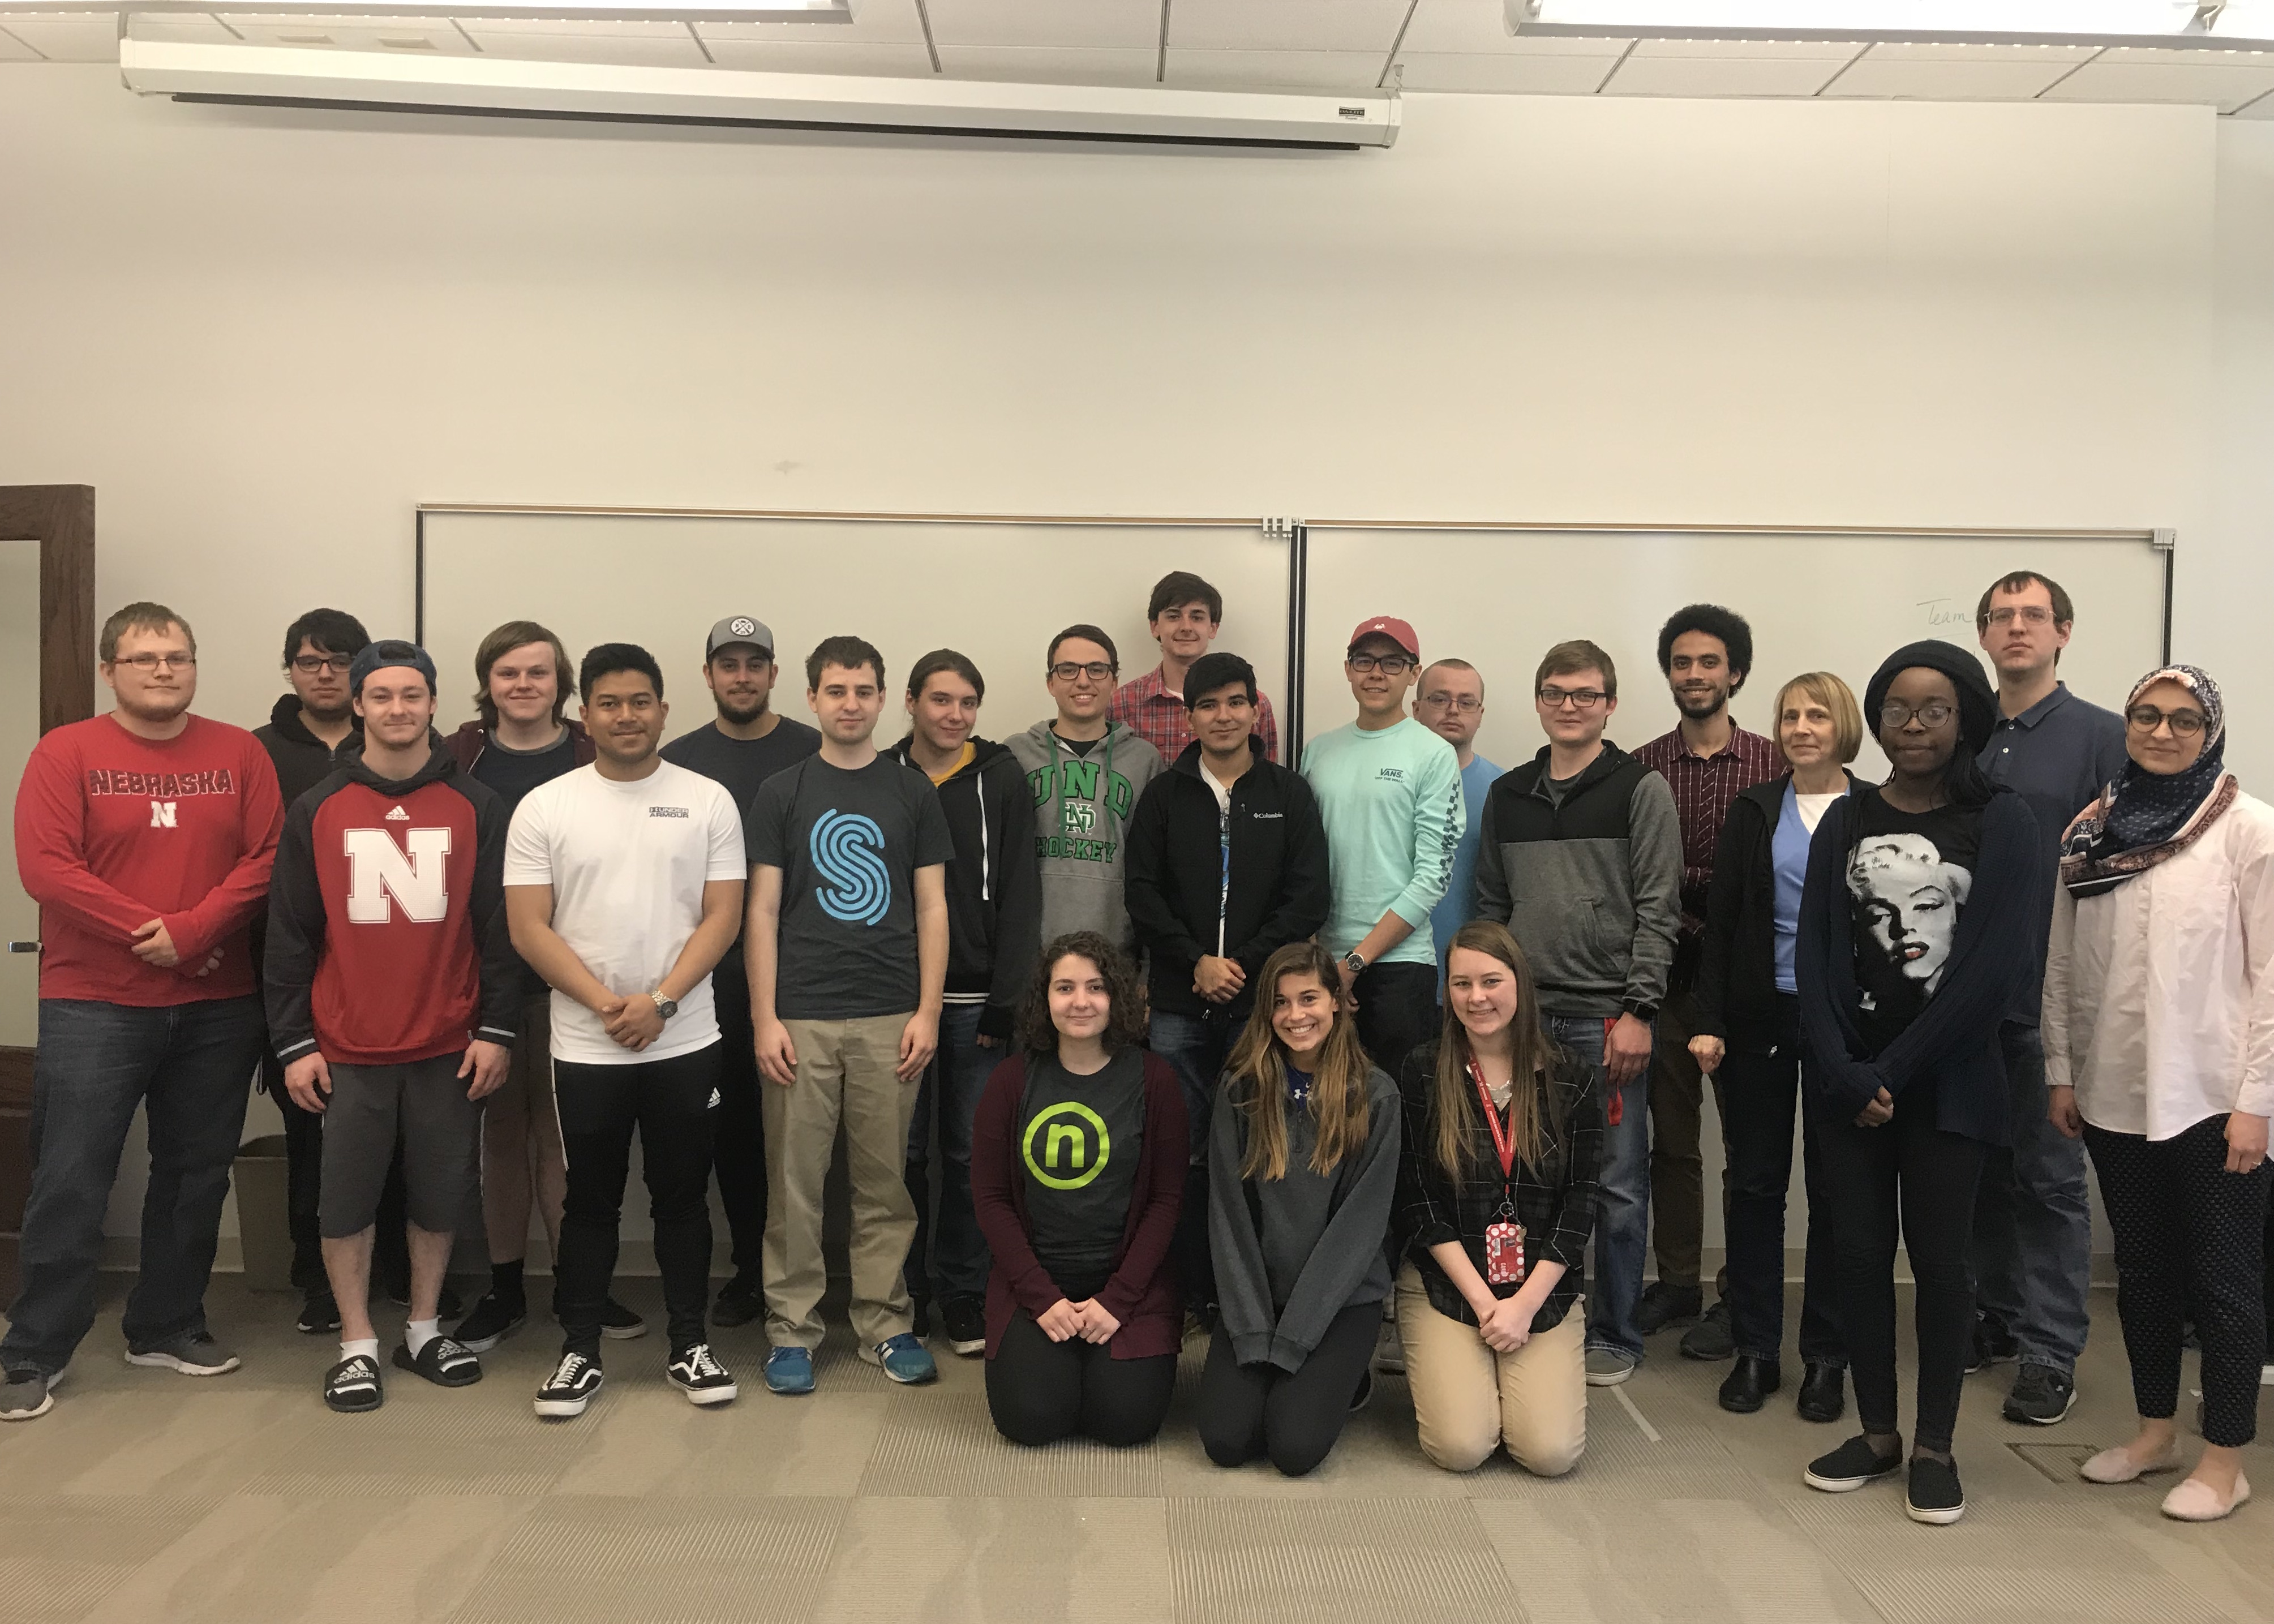 Members of CSE's first software engineering cohort pose after presenting their projects in SOFT 261.